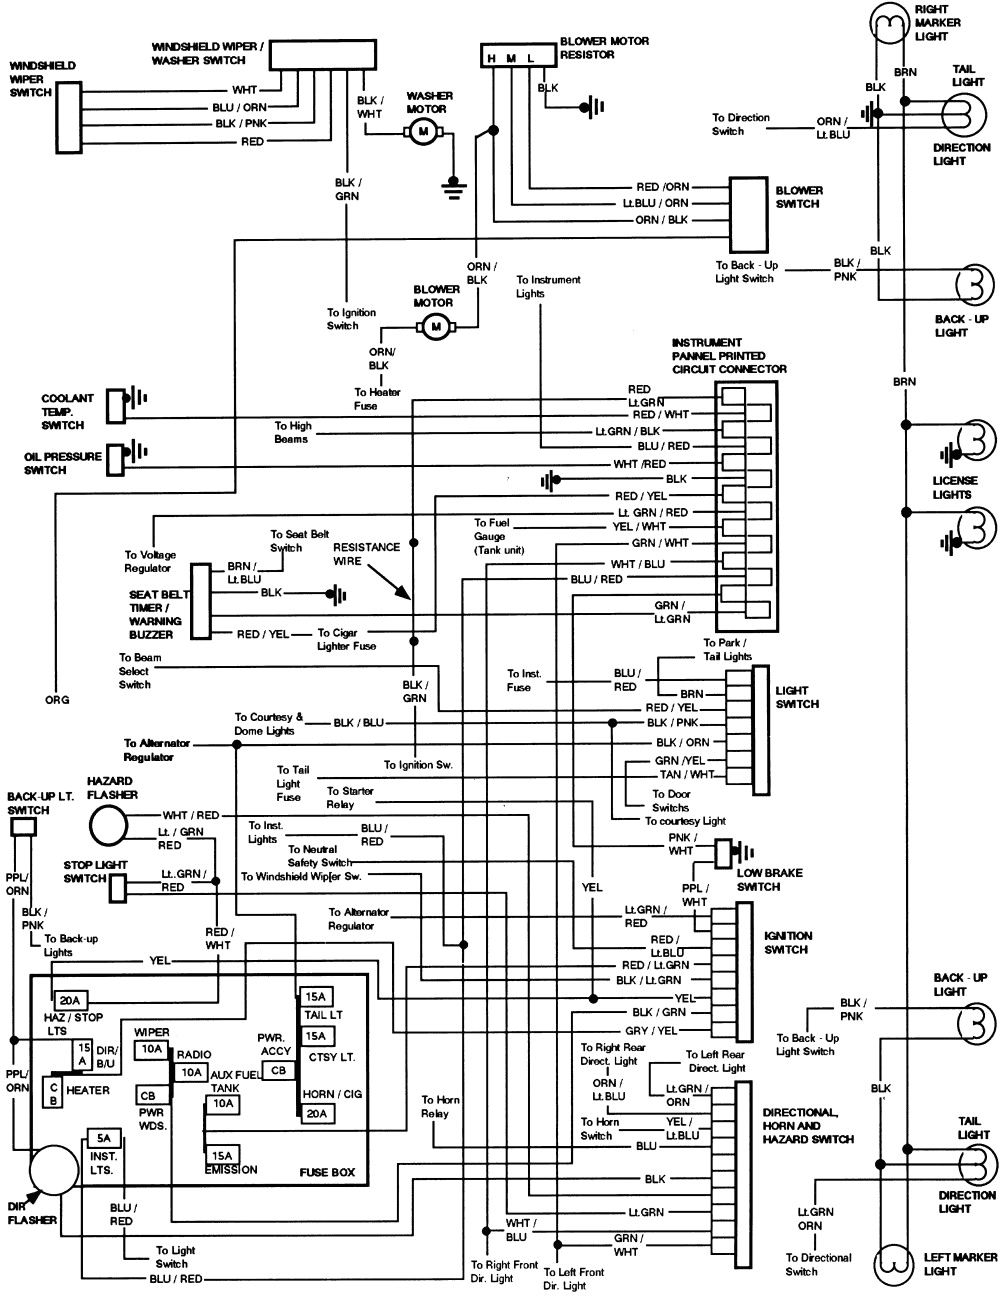 1983 ford f 350 wiring harness free download wiring diagram post 2014 ford f 250 dash